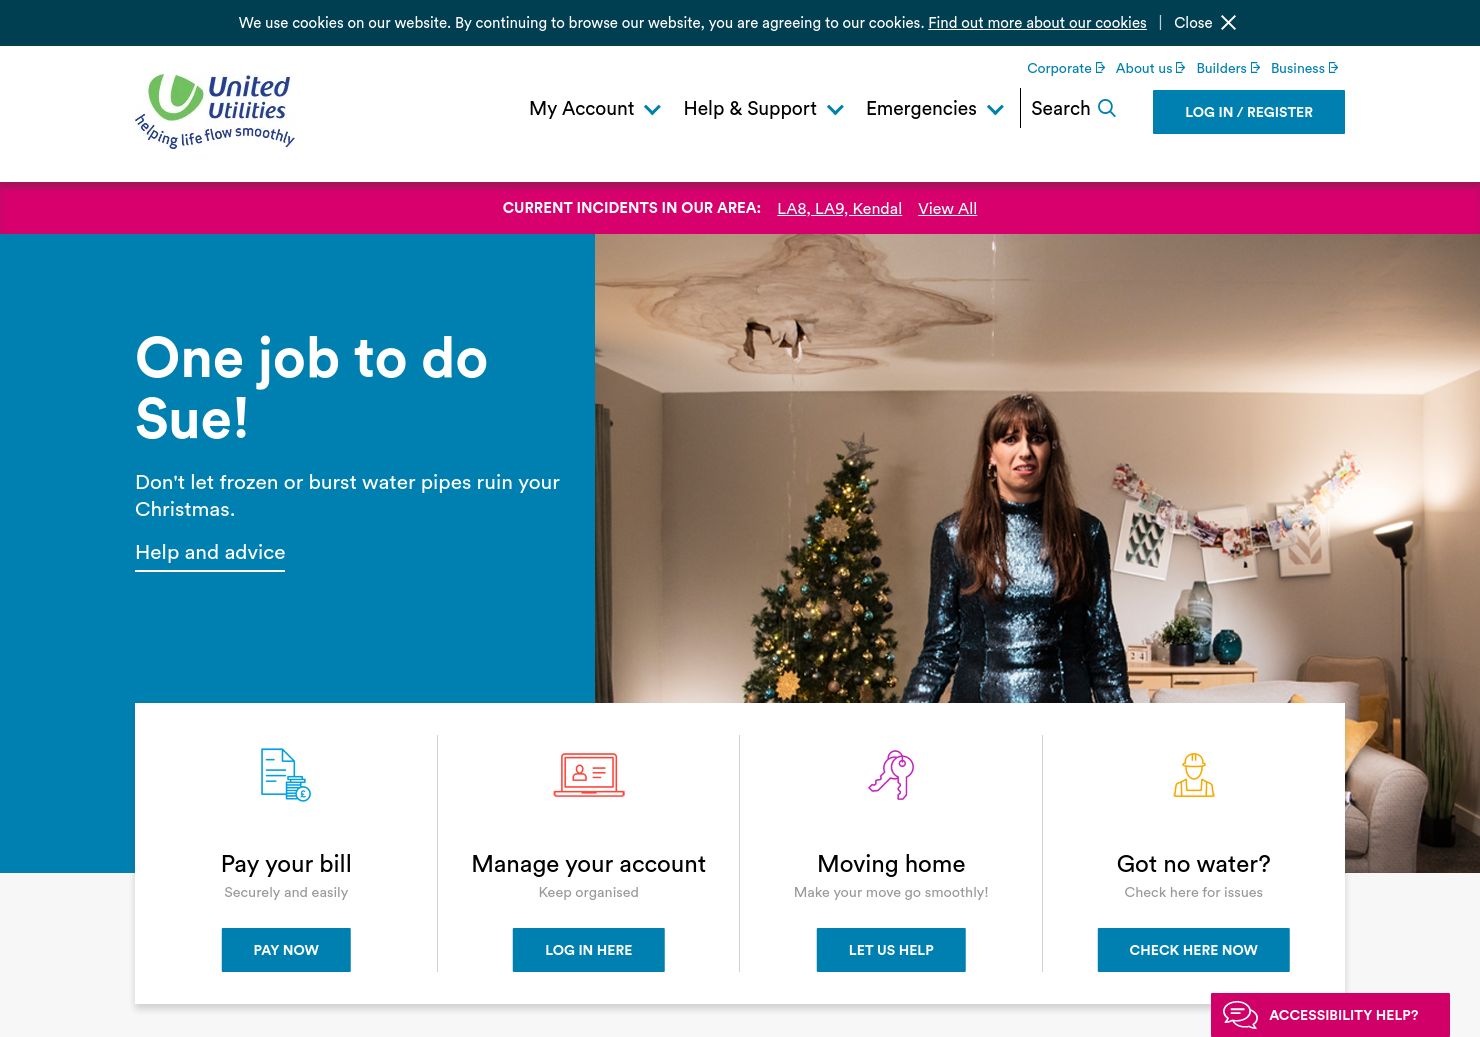 United Utilities Home Page